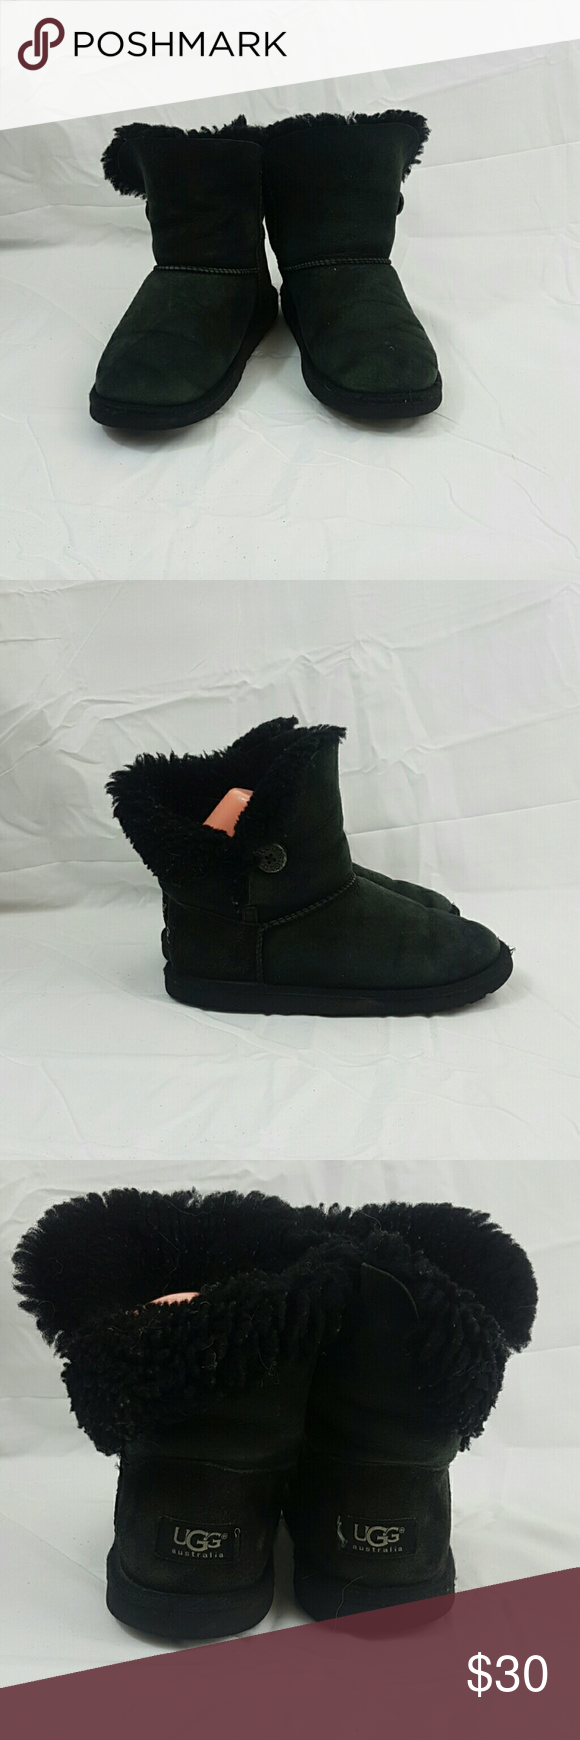 Black UGG Australia girls boots These shoe are in fair used condition. There is some wear on soles as shown in photos. Please look closely at the photos to judge condition for yourself. UGG Shoes Rain & Snow Boots #uggbootsoutfitblackgirl Black UGG Australia girls boots These shoe are in fair used condition. There is some wear on soles as shown in photos. Please look closely at the photos to judge condition for yourself. UGG Shoes Rain & Snow Boots #uggbootsoutfitblackgirl